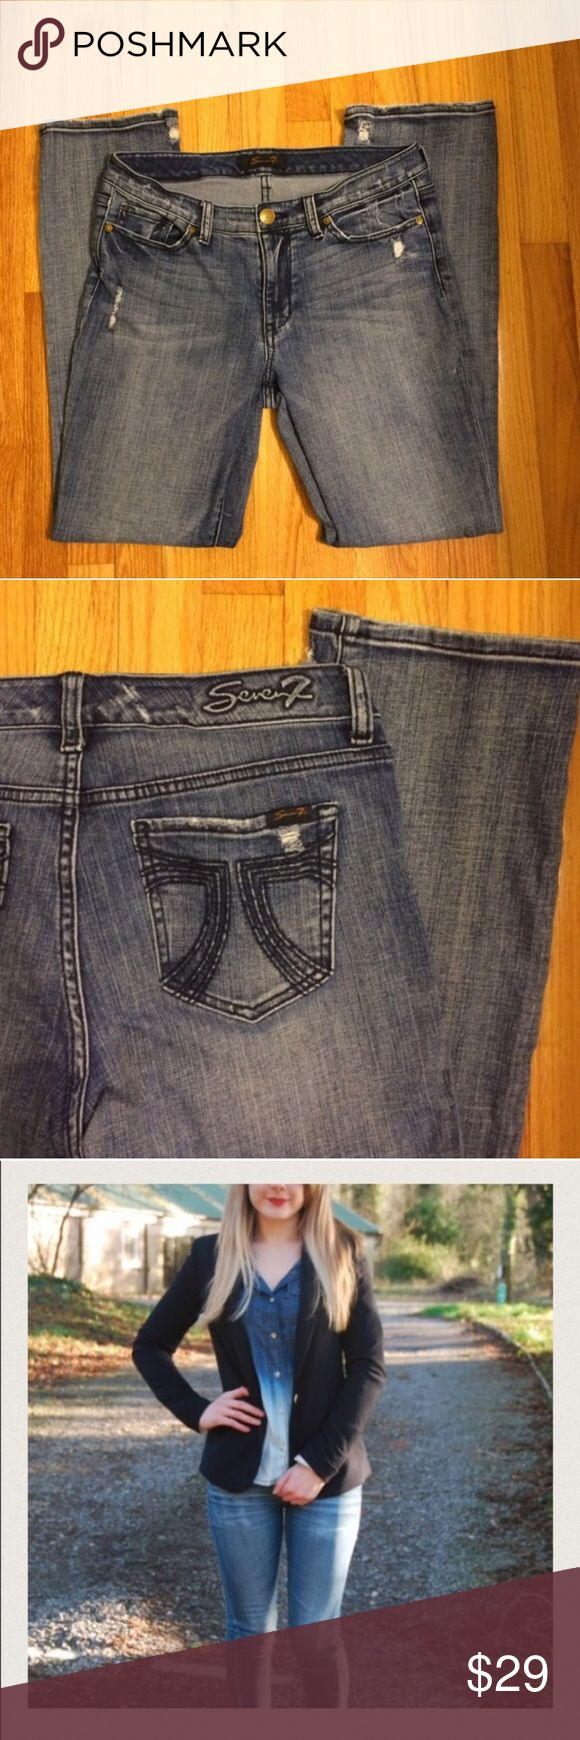 """Seven7 Perfect Distressed Classic Denim Inseam approximately 31.5"""" with rise around 9"""". Well loved and cared for with price accounting wear. 20% off bundles! Thanks for looking! First pict to show styling options, final three pictures is of denim for sale.  Seven7 Distressed Denim Seven7 Jeans"""